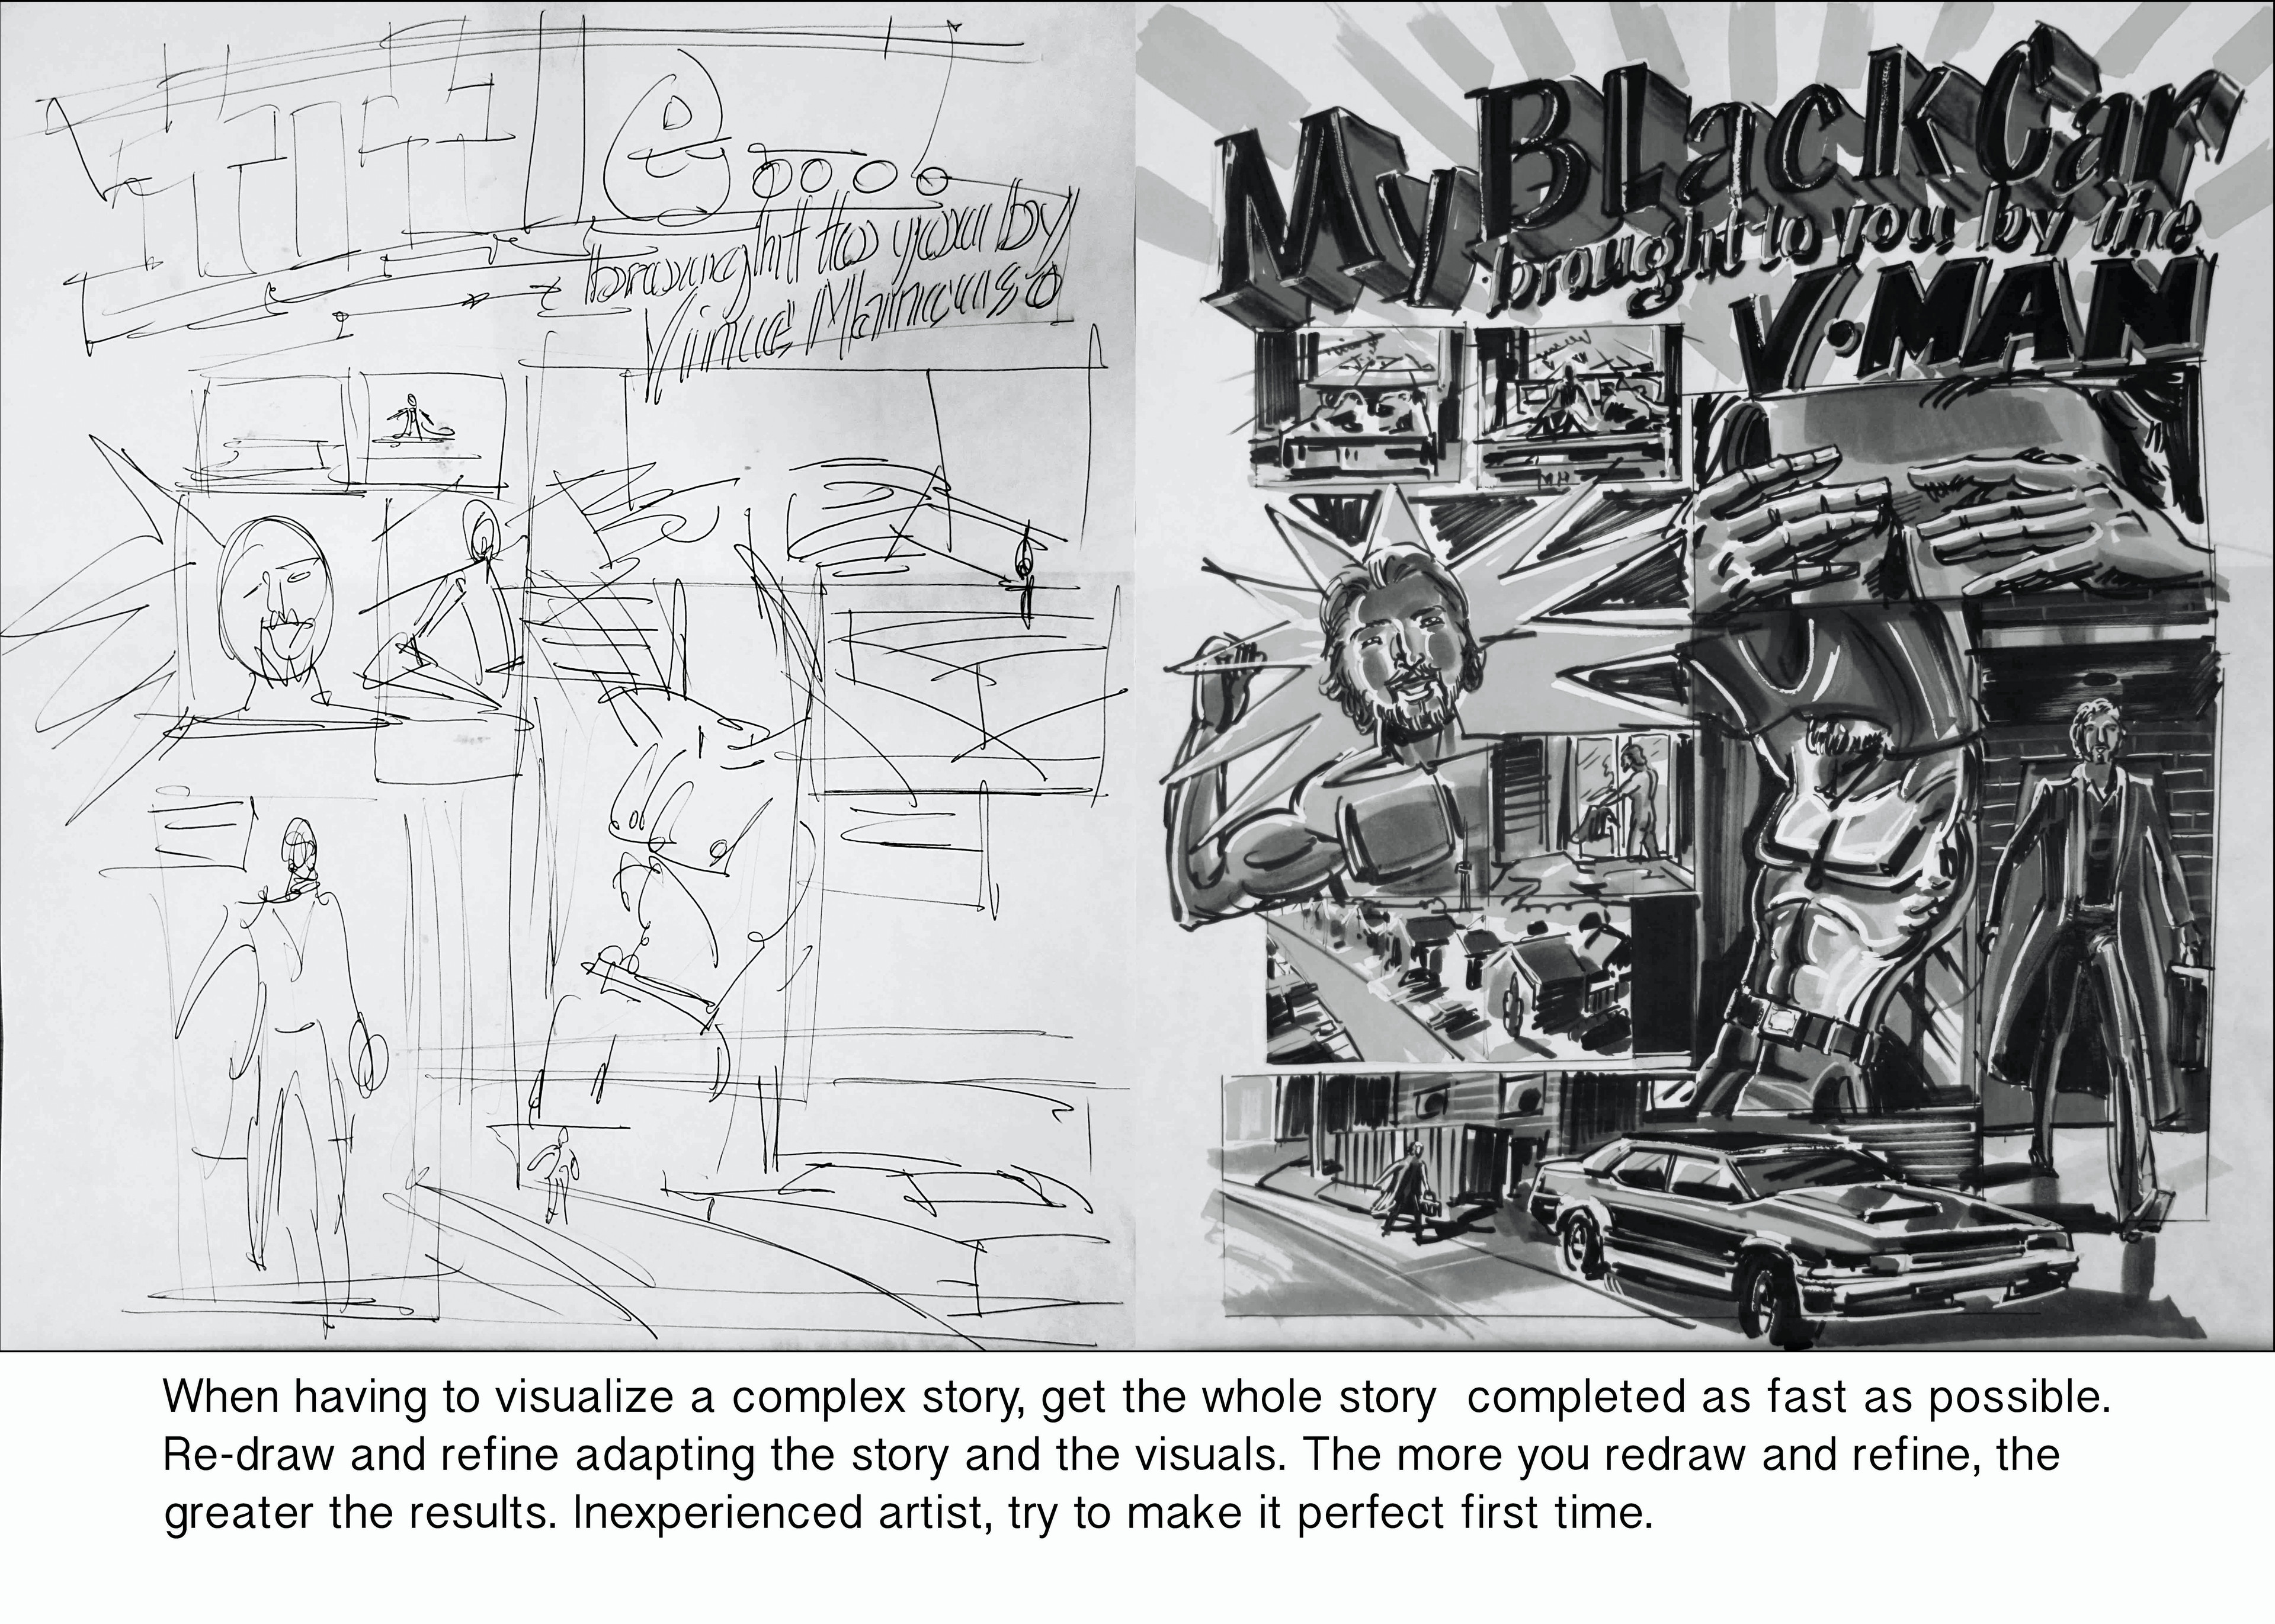 A concept board example that I created to show the basic anatomy of a Concept Board or Flow Board, used in advertising. It has similarity to a Comic Book or Graphic Novel.